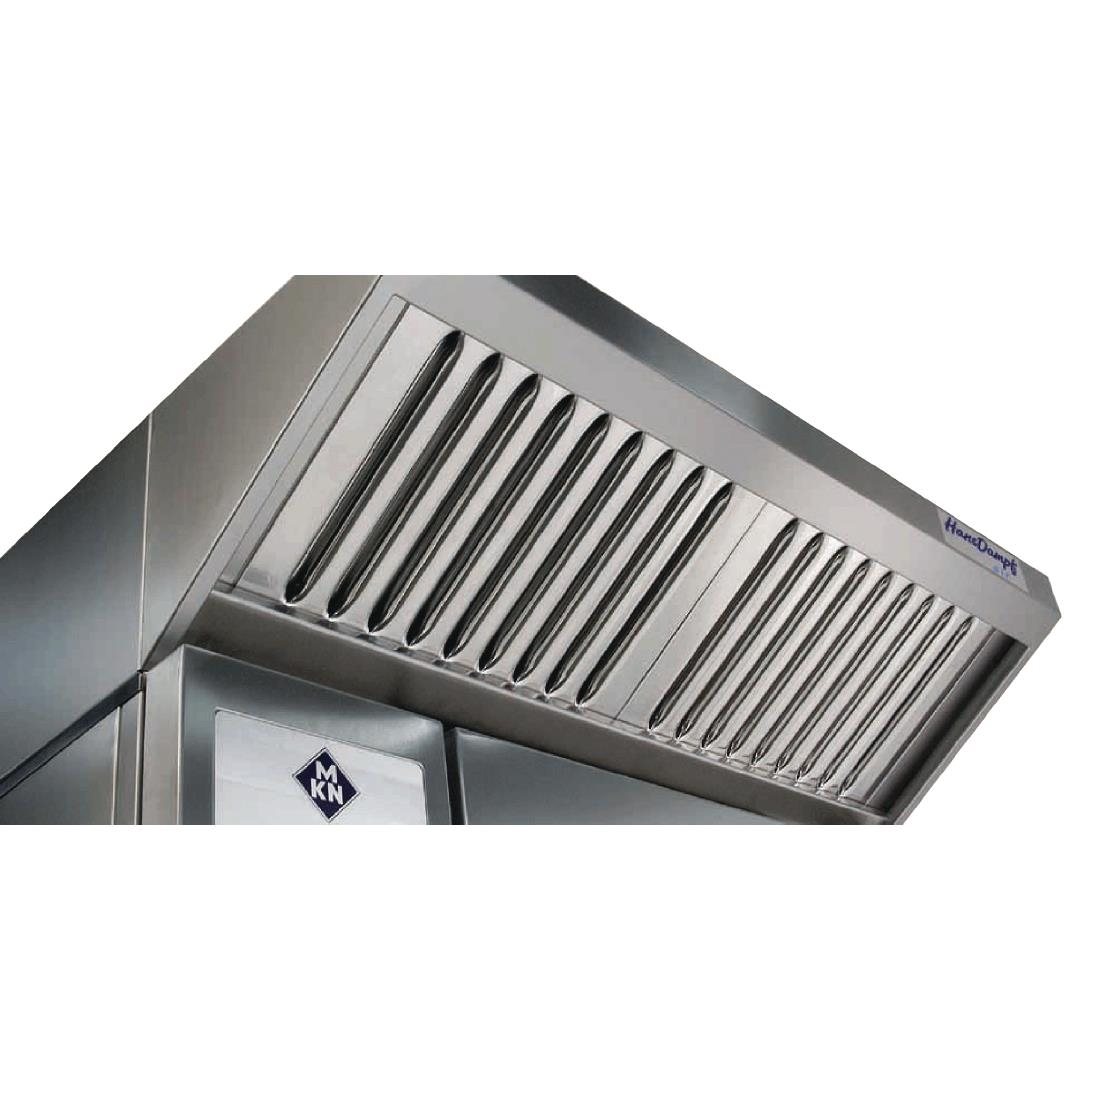 Image of MKN Gold Combination Oven Condenser Hood